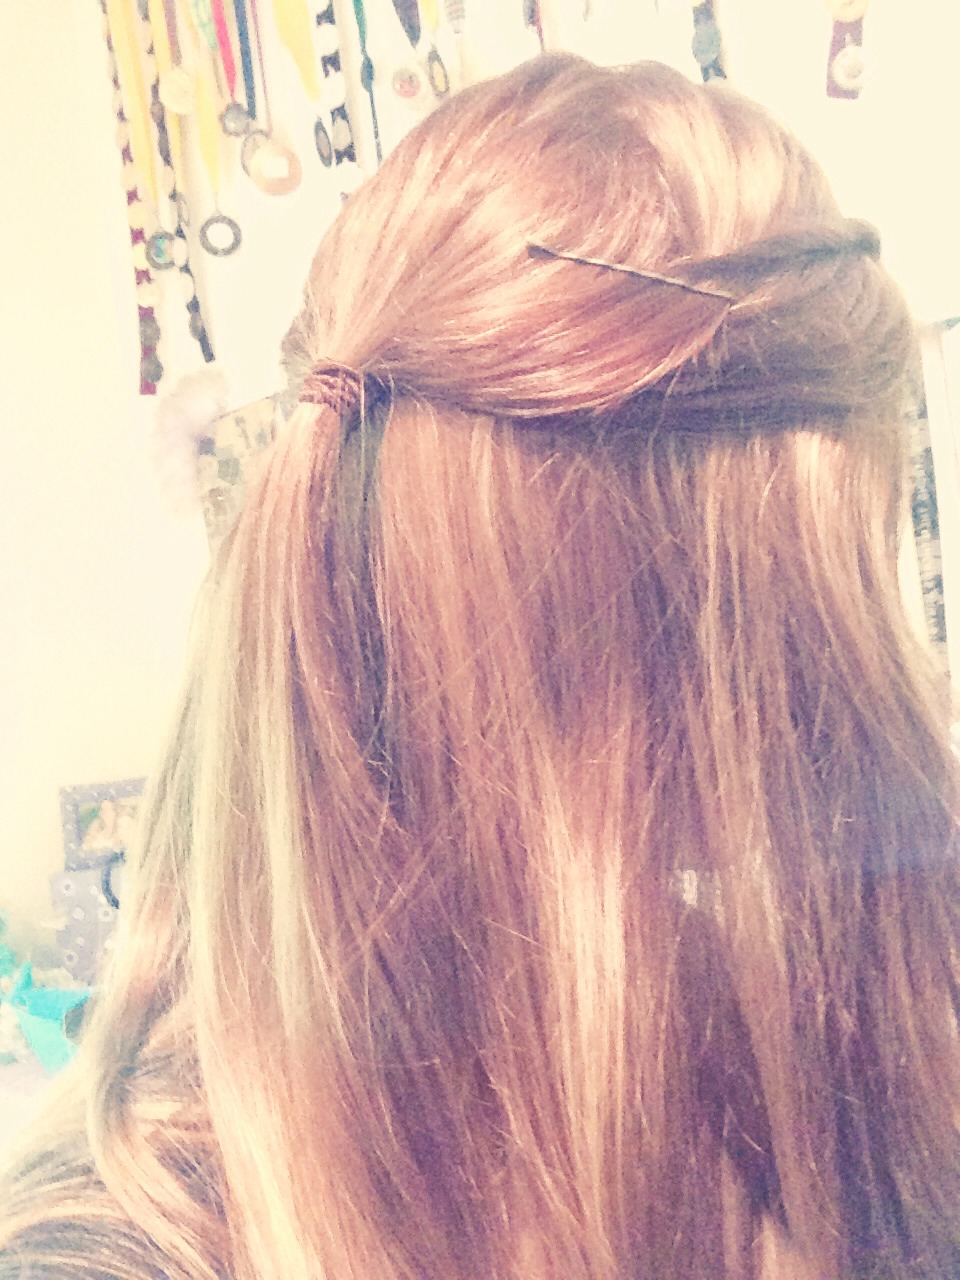 Tie up 1/2 your hair into small pony tail